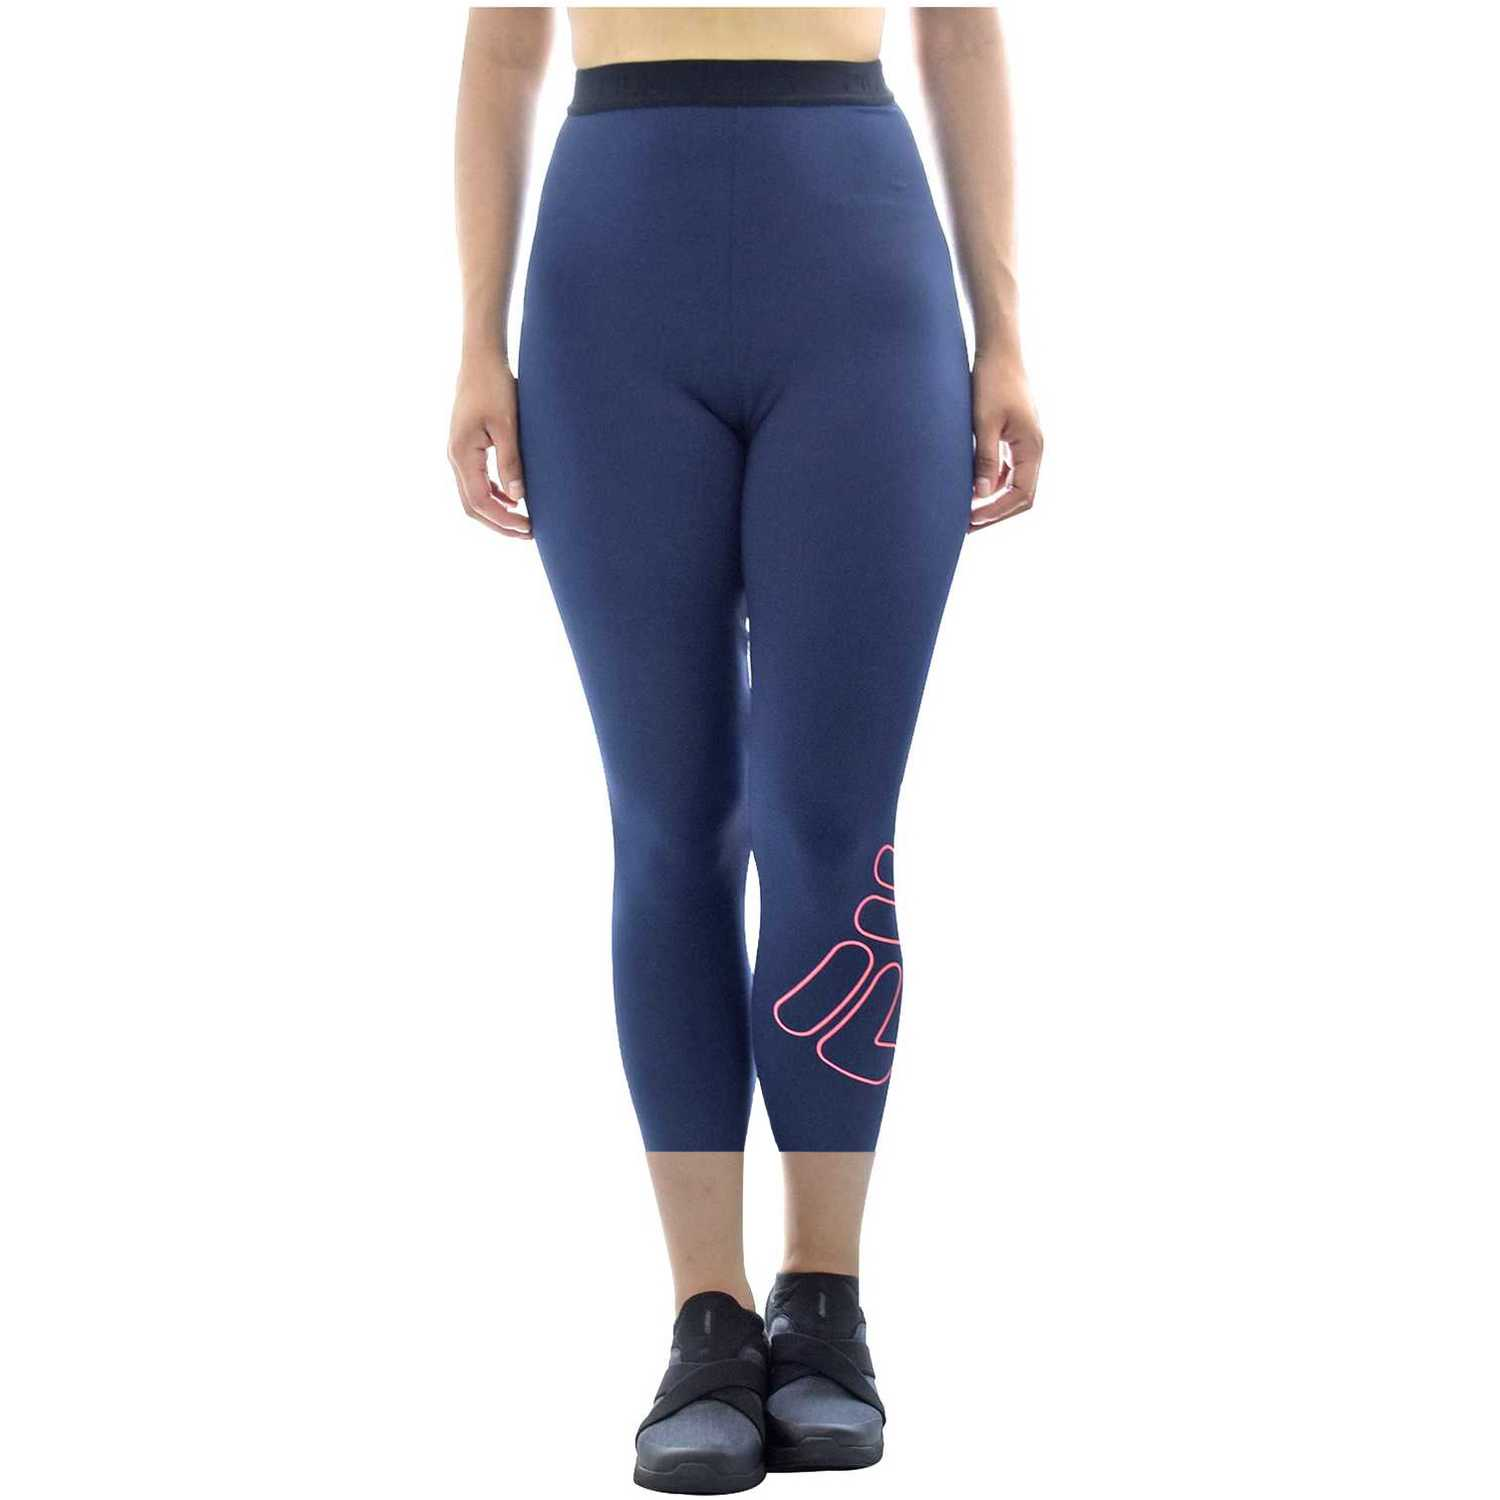 Capri de Mujer Fila Azul / fucsia women knee pants train